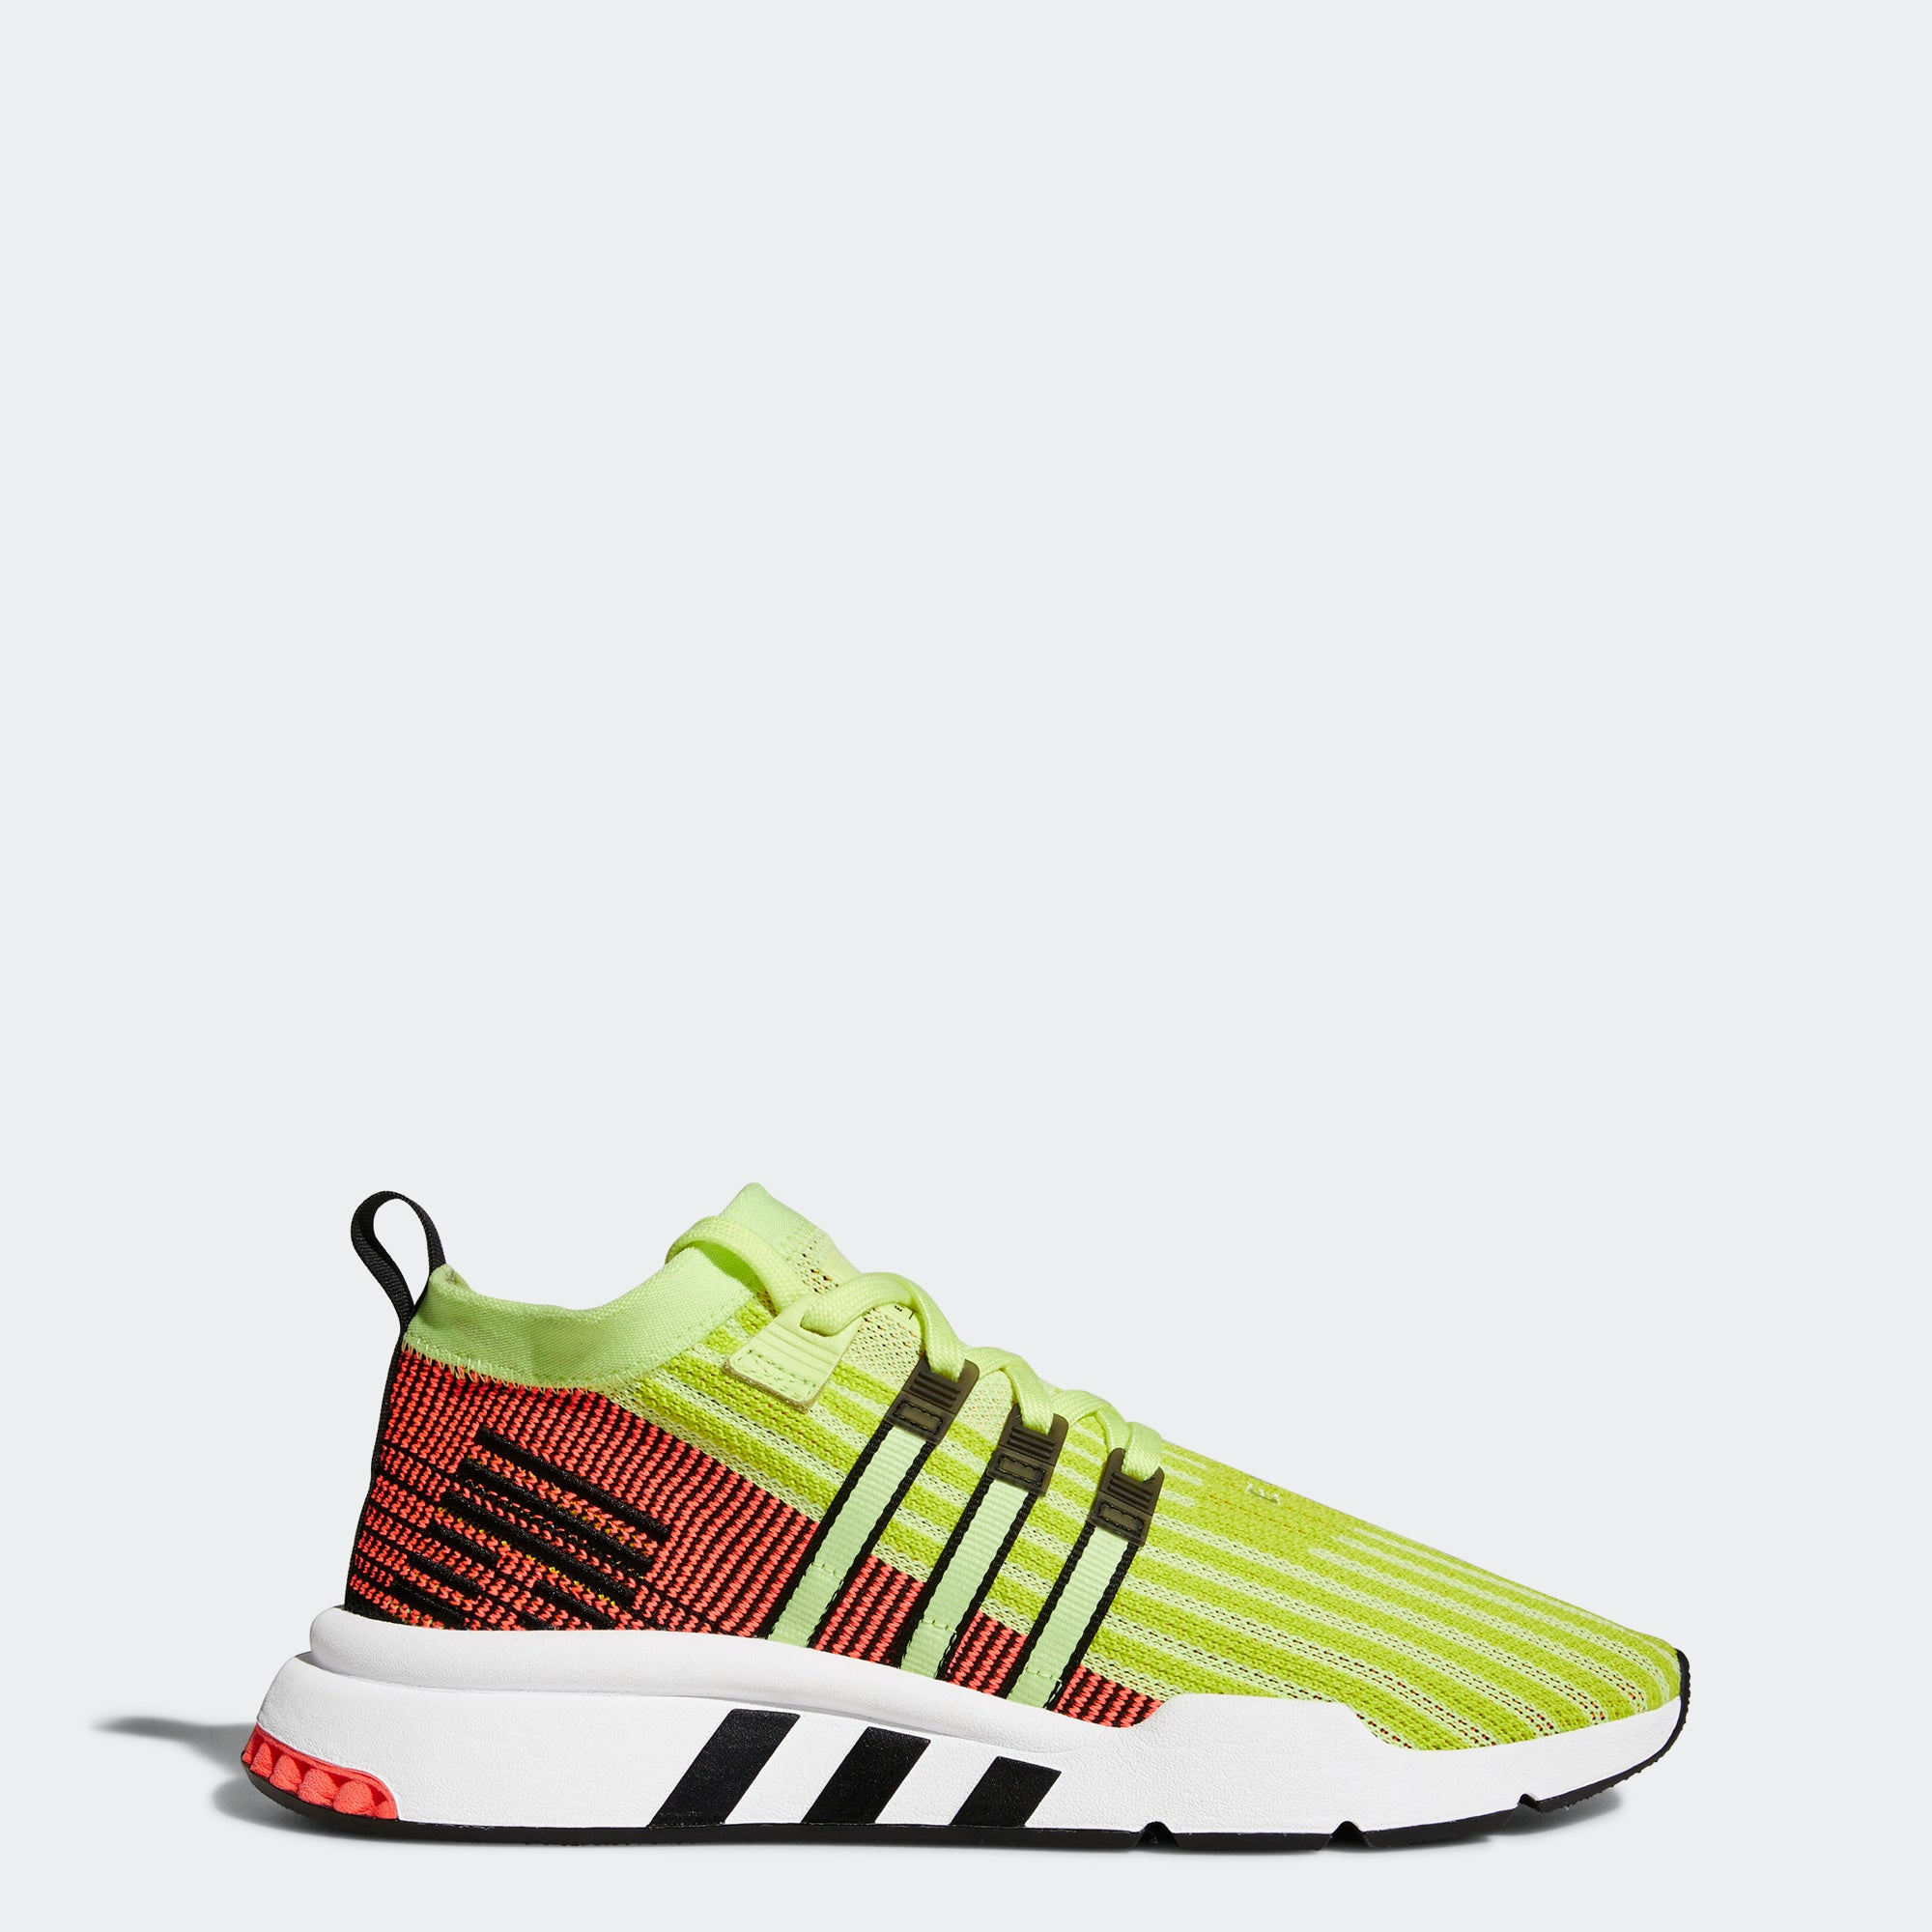 adidas EQT Mid ADV PK Shoes Yellow B37436 | Chicago City Sports